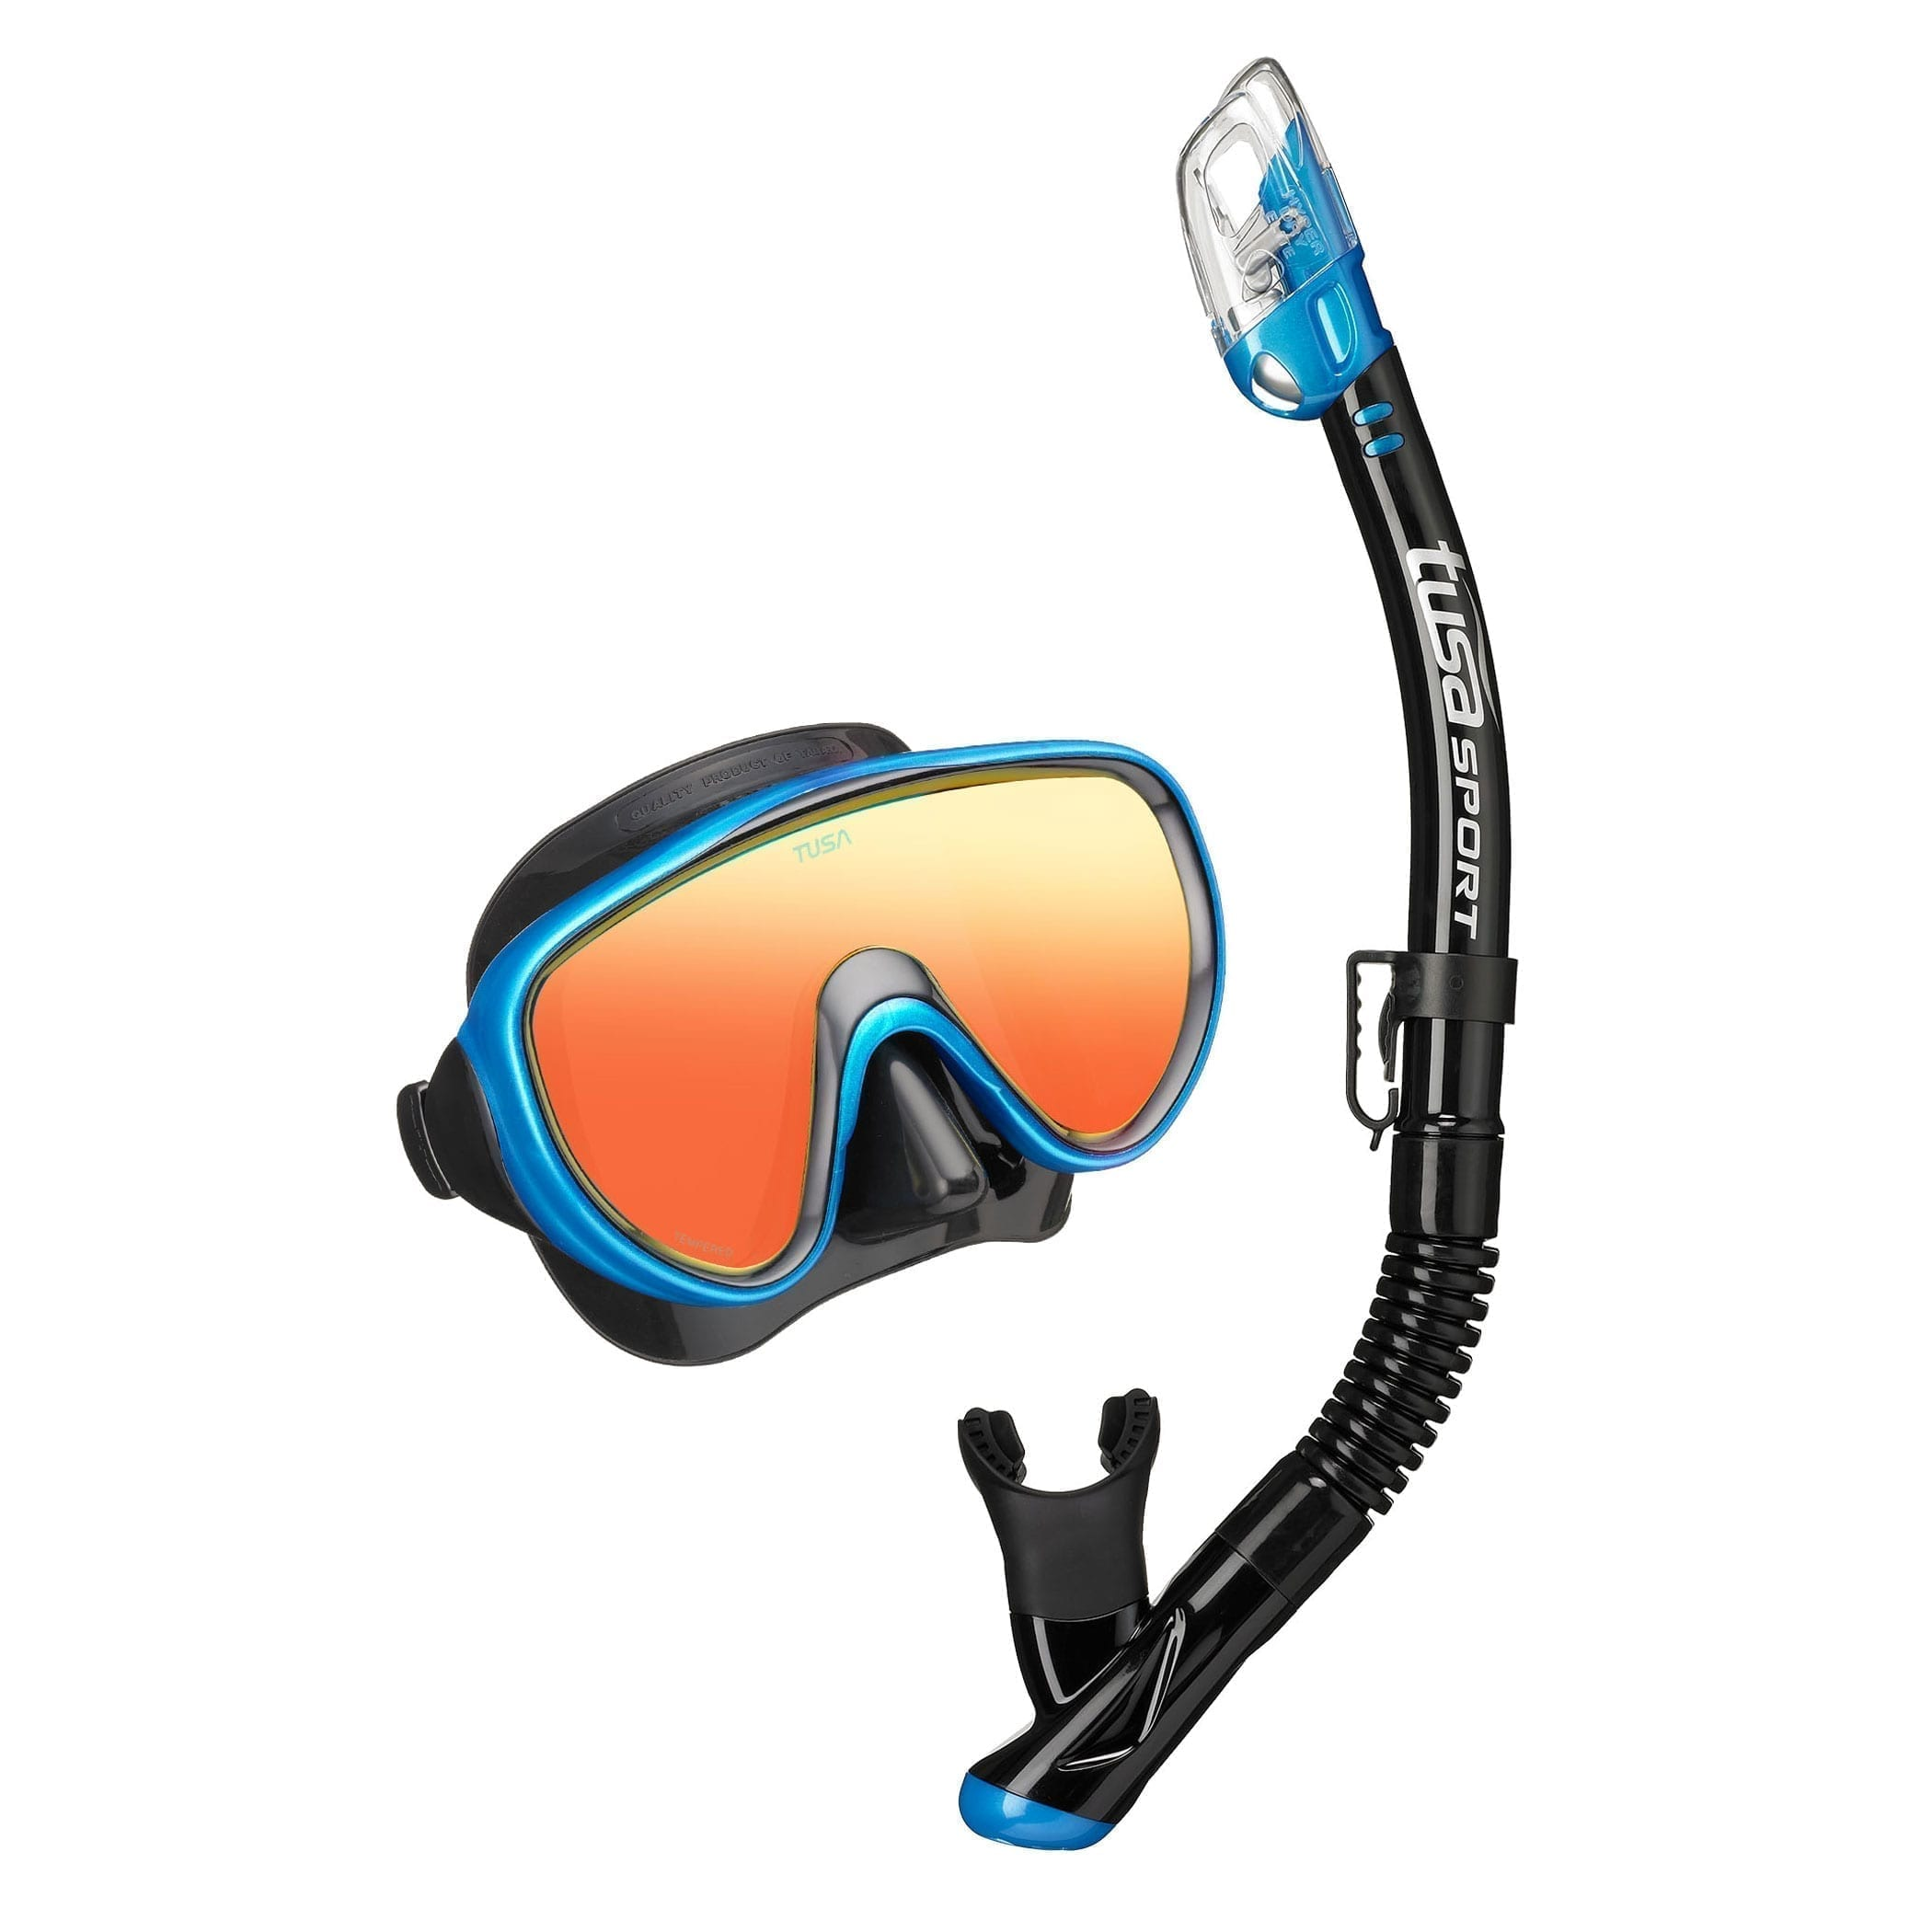 TUSA Sport Serene Adult Combo Mirror Lens Fishtail Blue snorkelling gear